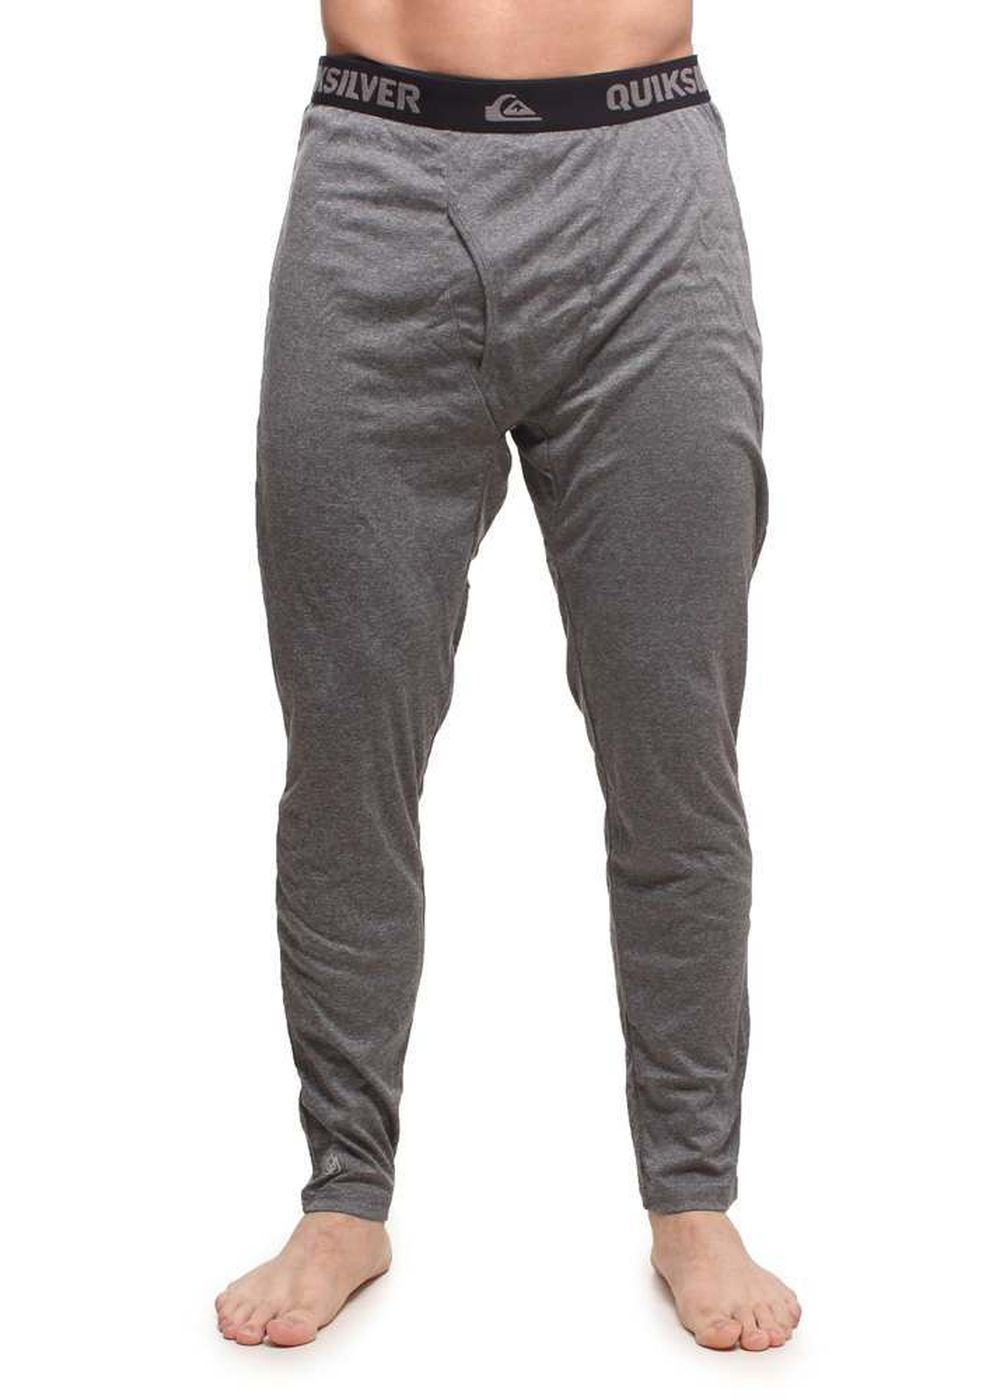 QUIKSILVER T.R TODAY THERMAL LEGGINGS Anthracite